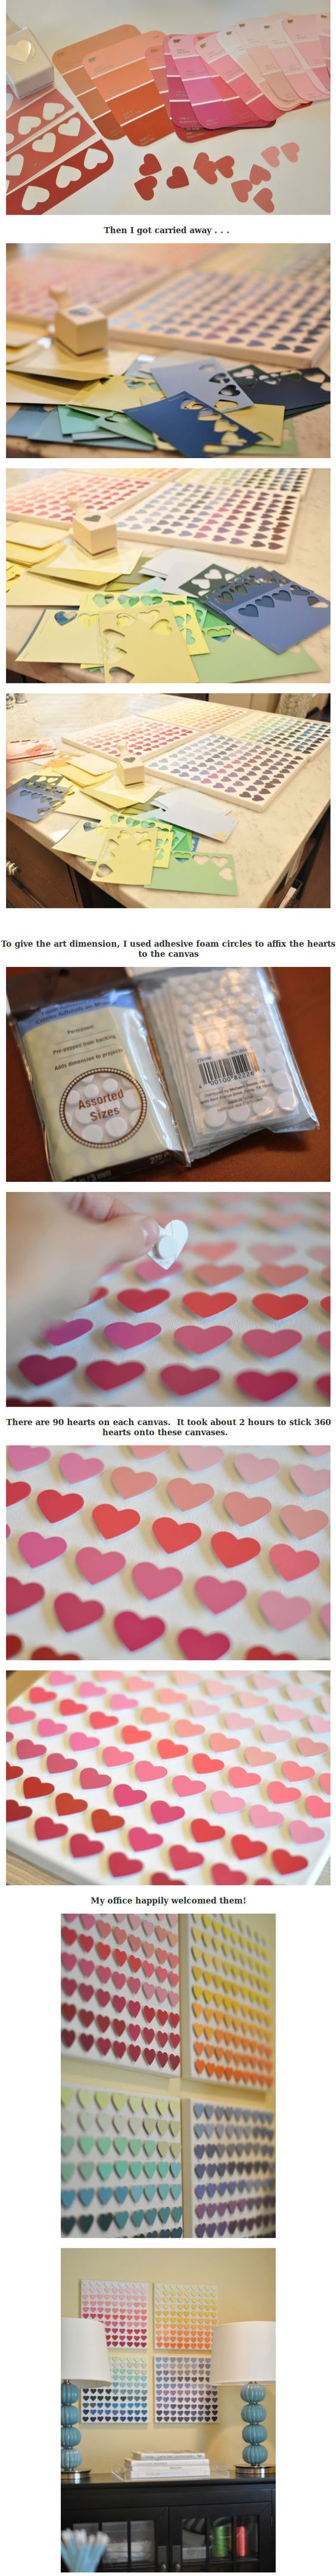 DIY Hearts Shaped Paint Chip Art: